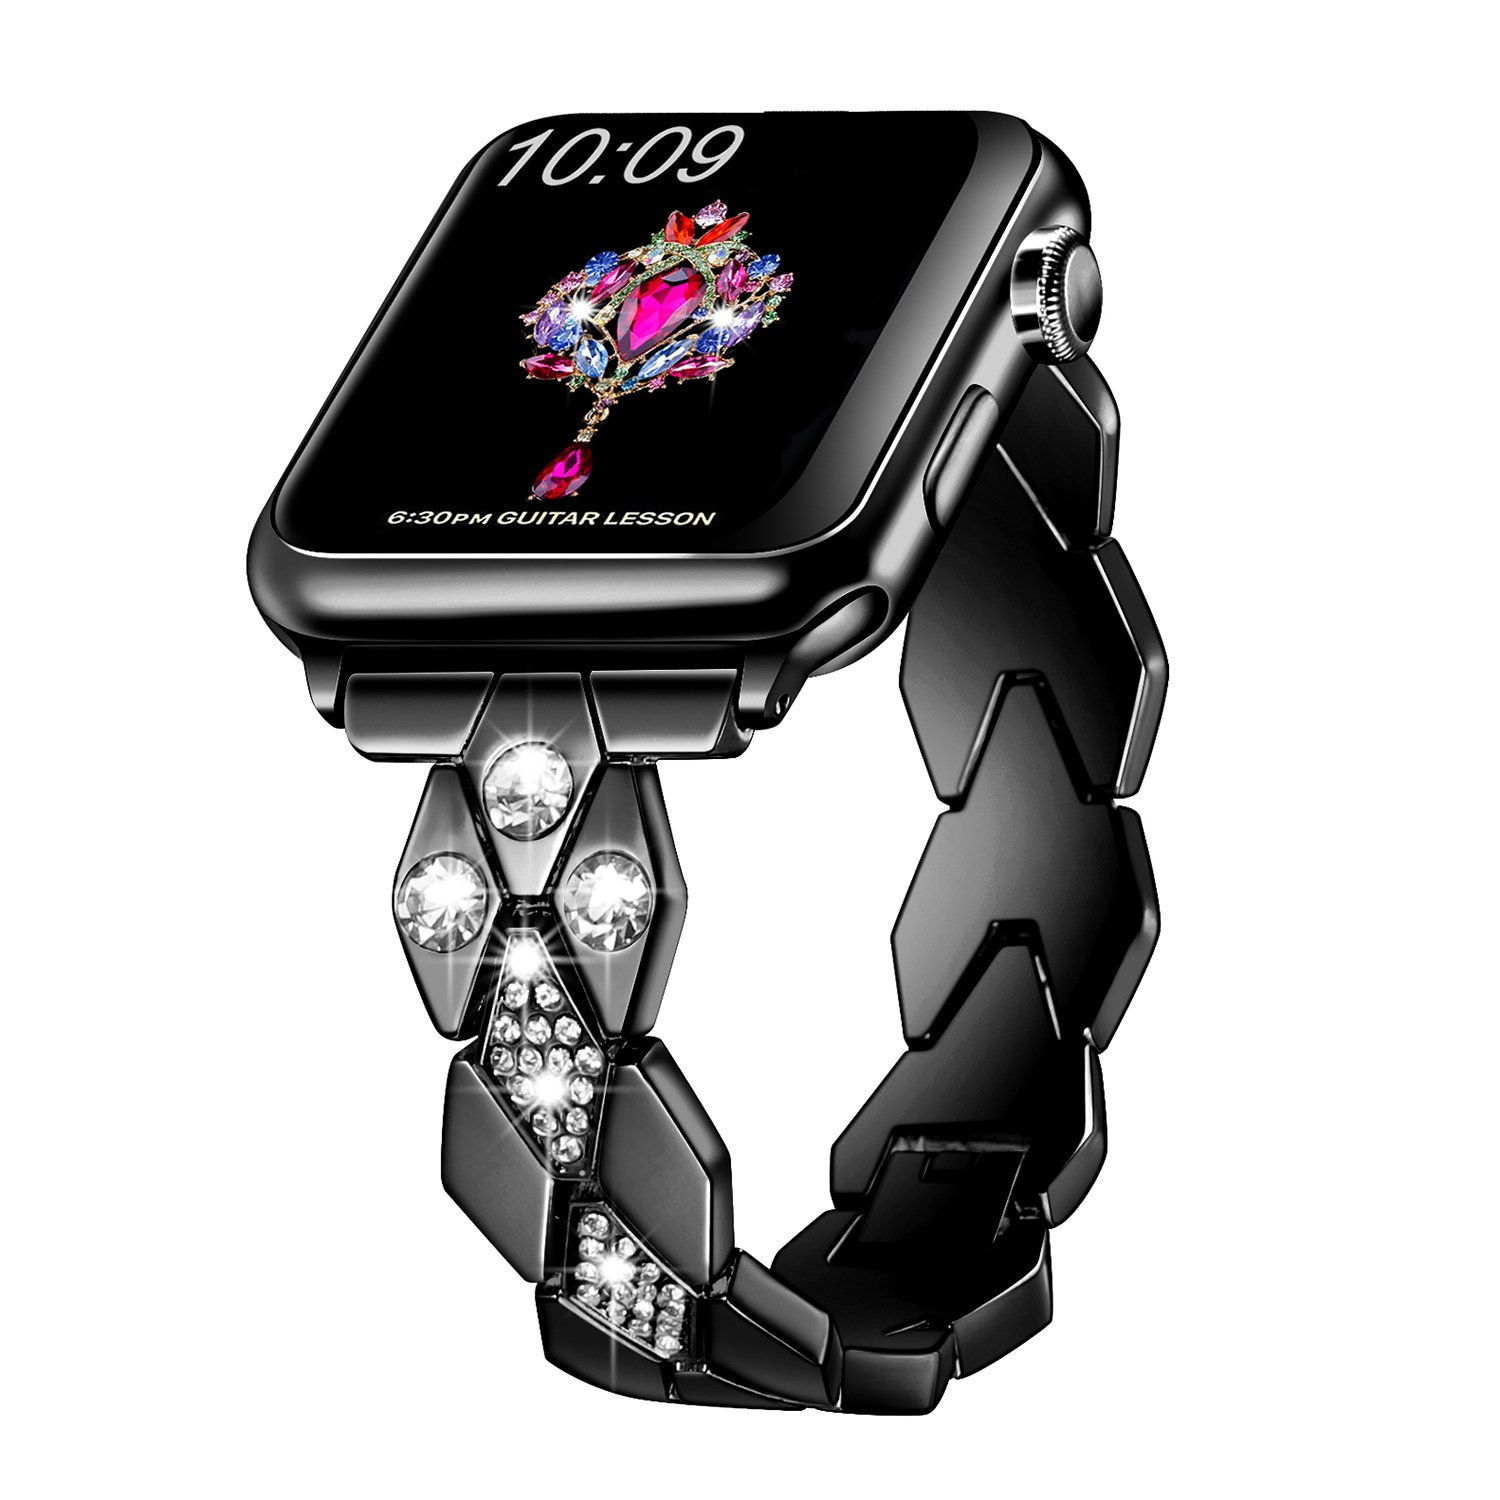 Sangaimei Replacement Wristband Compatible with Apple Watch 38mm 40mm Stainless Steel Smartwatch Bands Compatible with Apple Watch Series 5 Series 4 ...